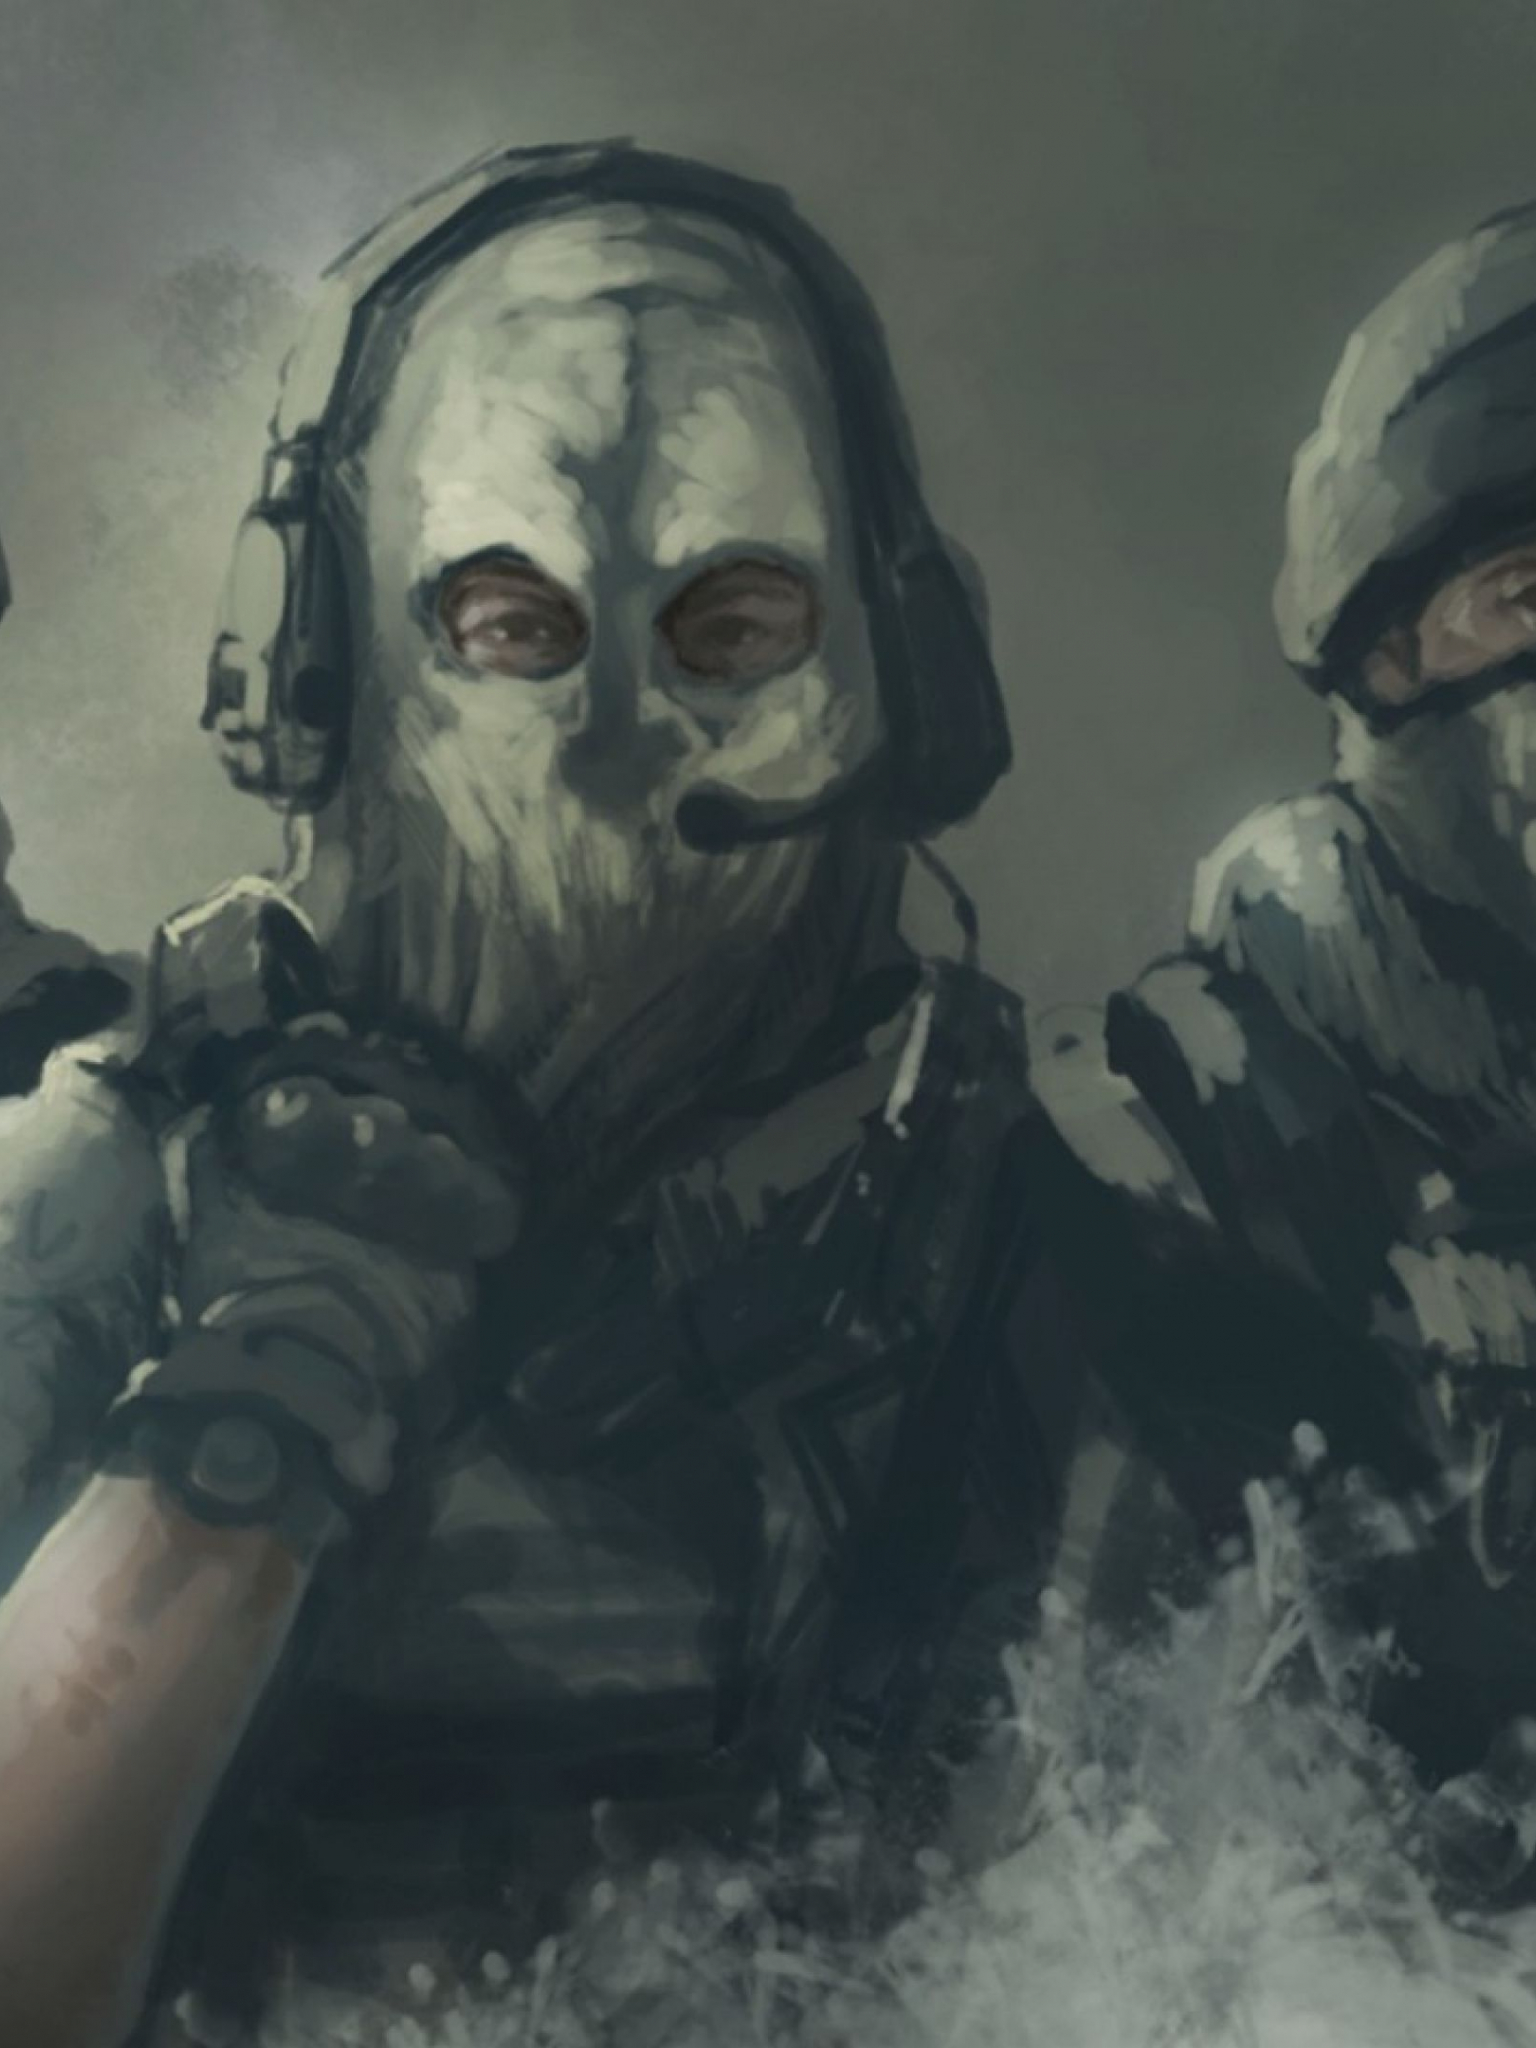 Free Download Download Wallpaper 3840x2160 Call Of Duty Ghosts Art